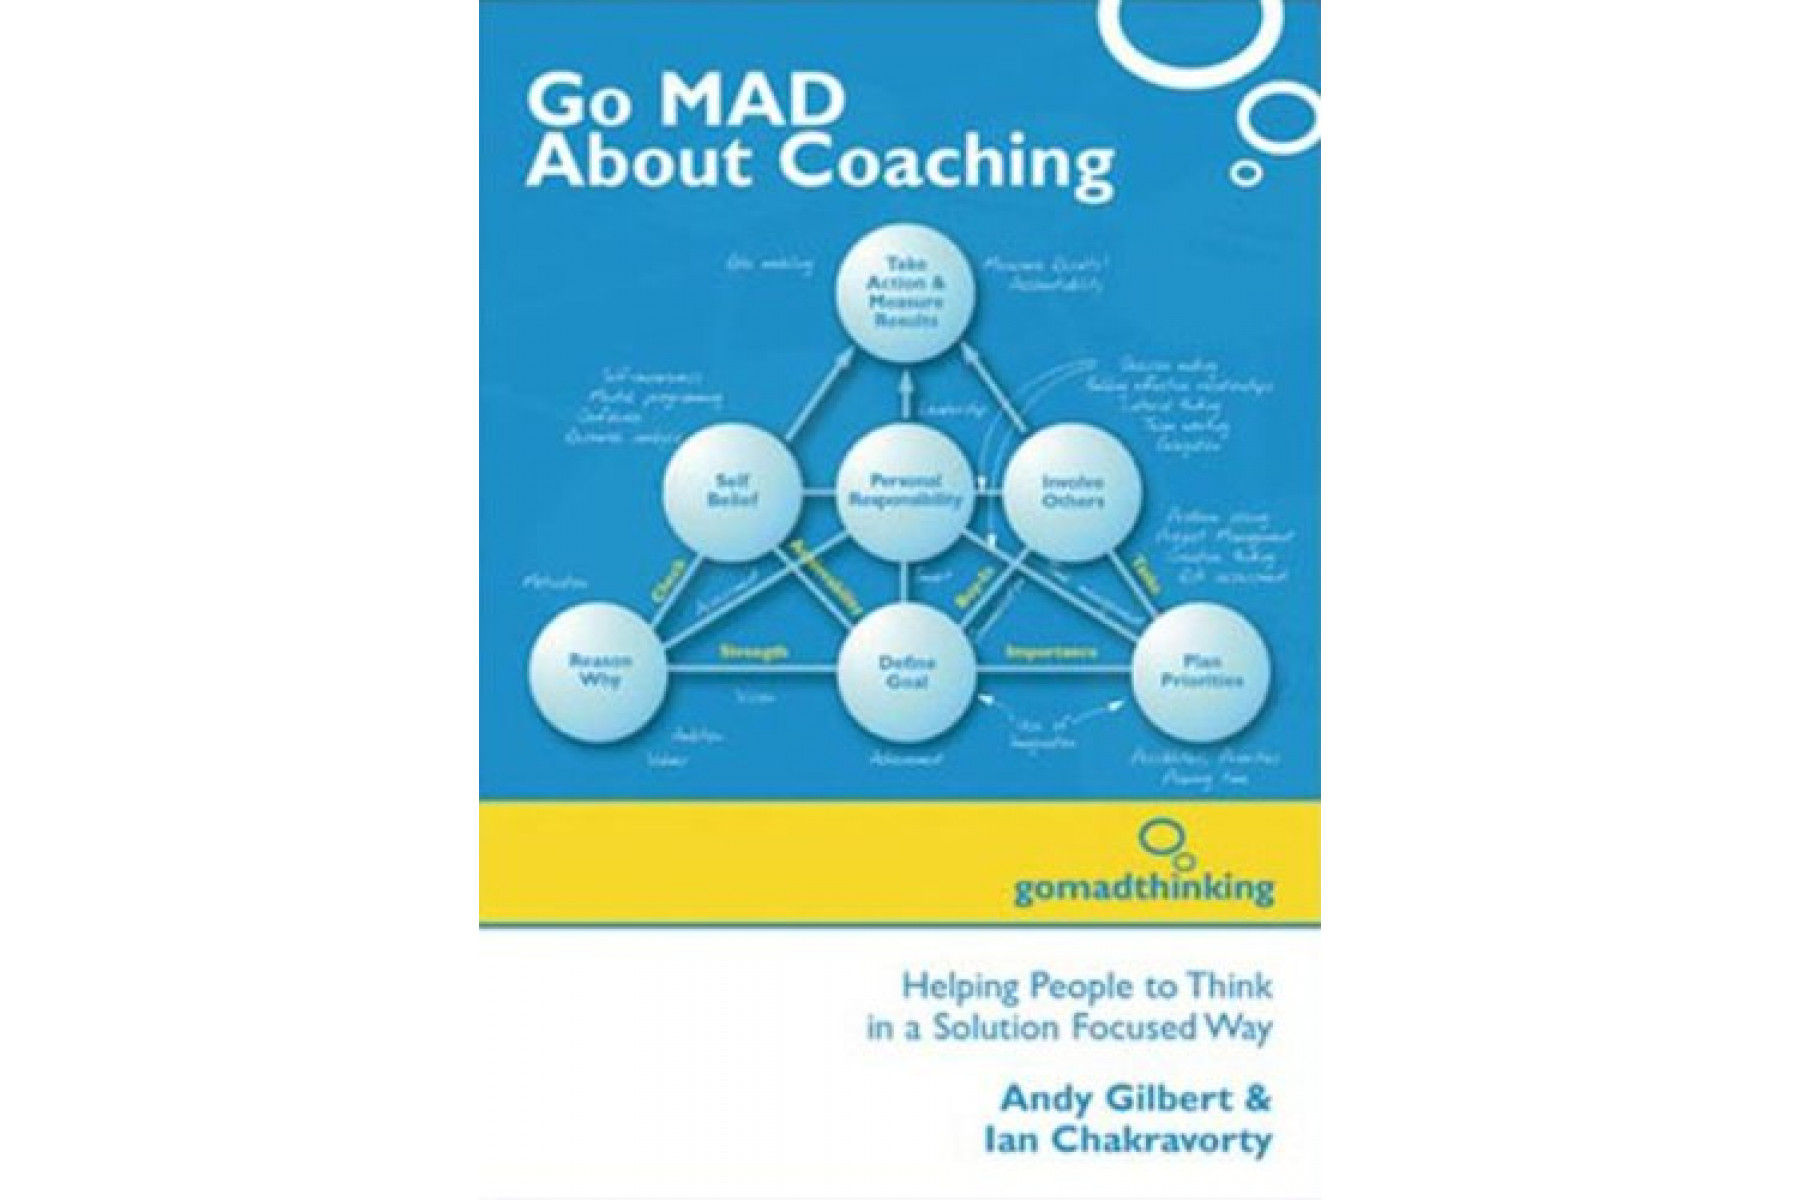 Go MAD About Coaching